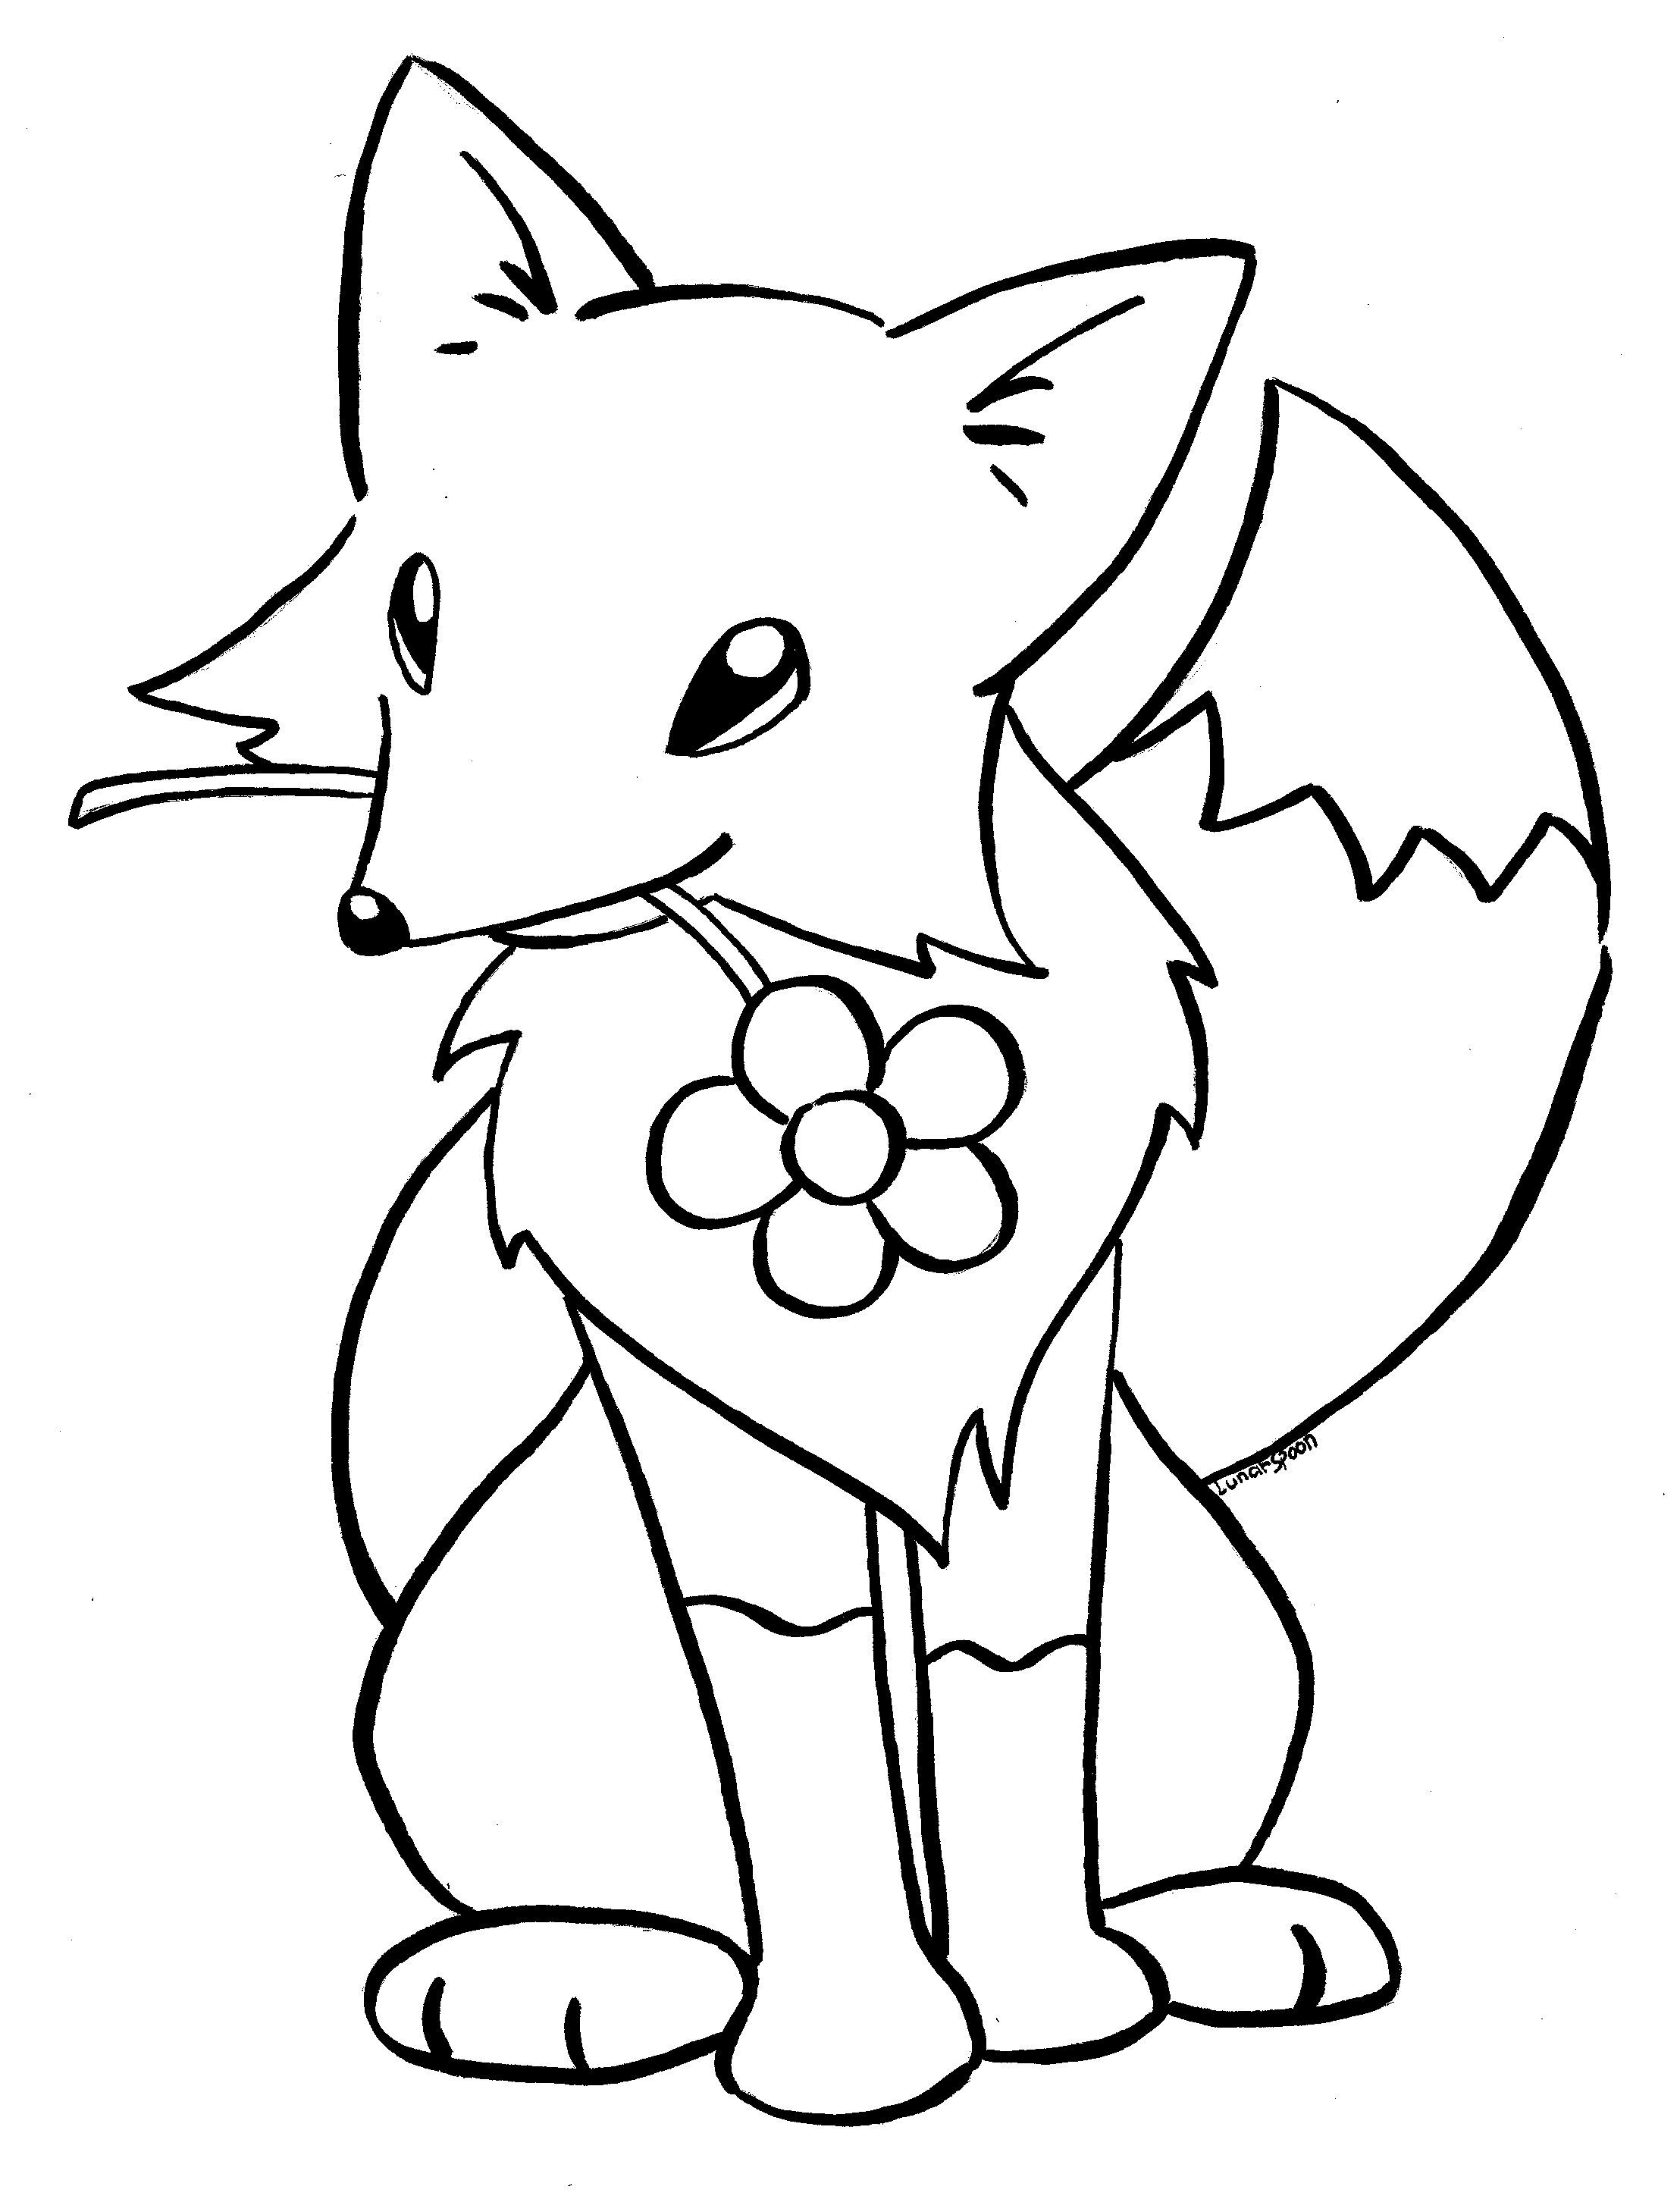 Image Result For Fox Coloring Pages For Kids Printable Fox Coloring Page Puppy Coloring Pages Owl Coloring Pages